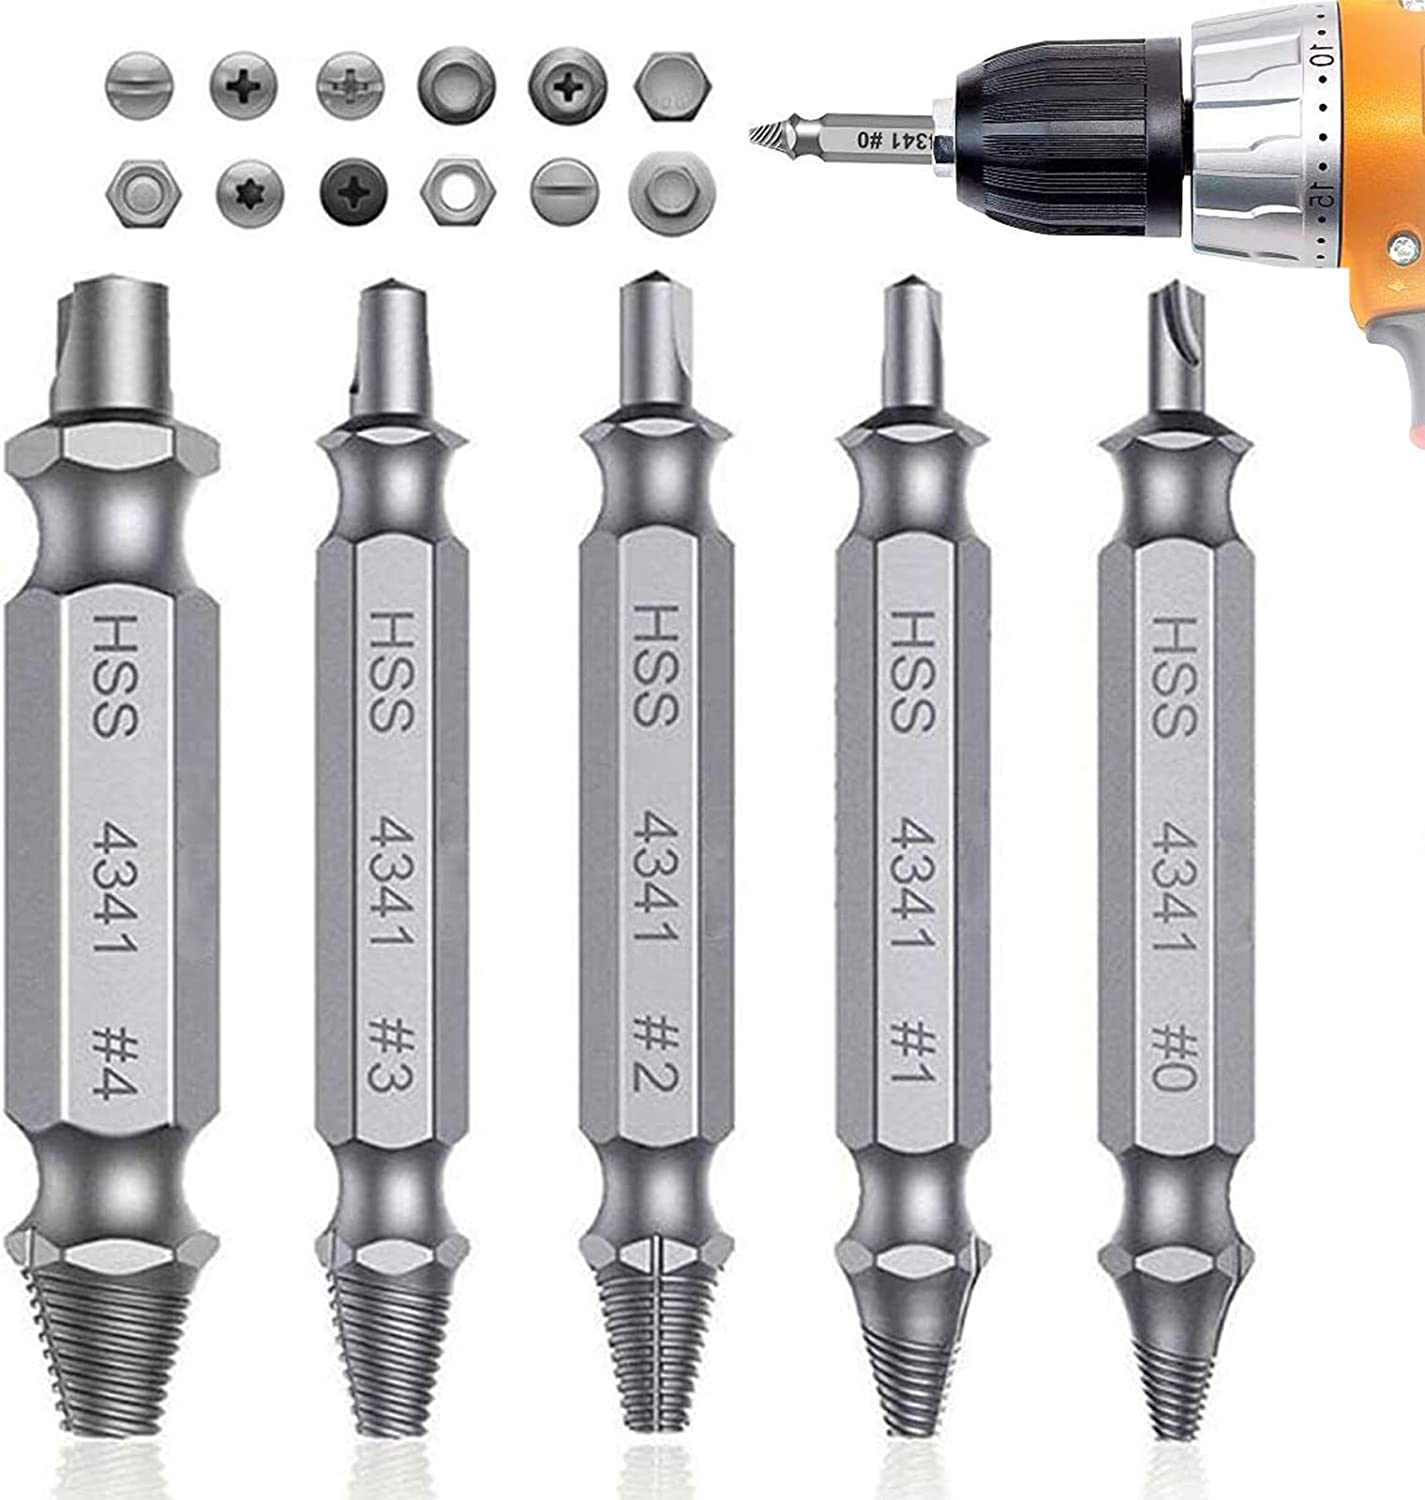 Silver 5PCS High Speed Steel H.S.S 4341 Socket Adapter Screw Removal Set Damaged Stripped Screw Extractor Kit for Broken Screw Extractor Set